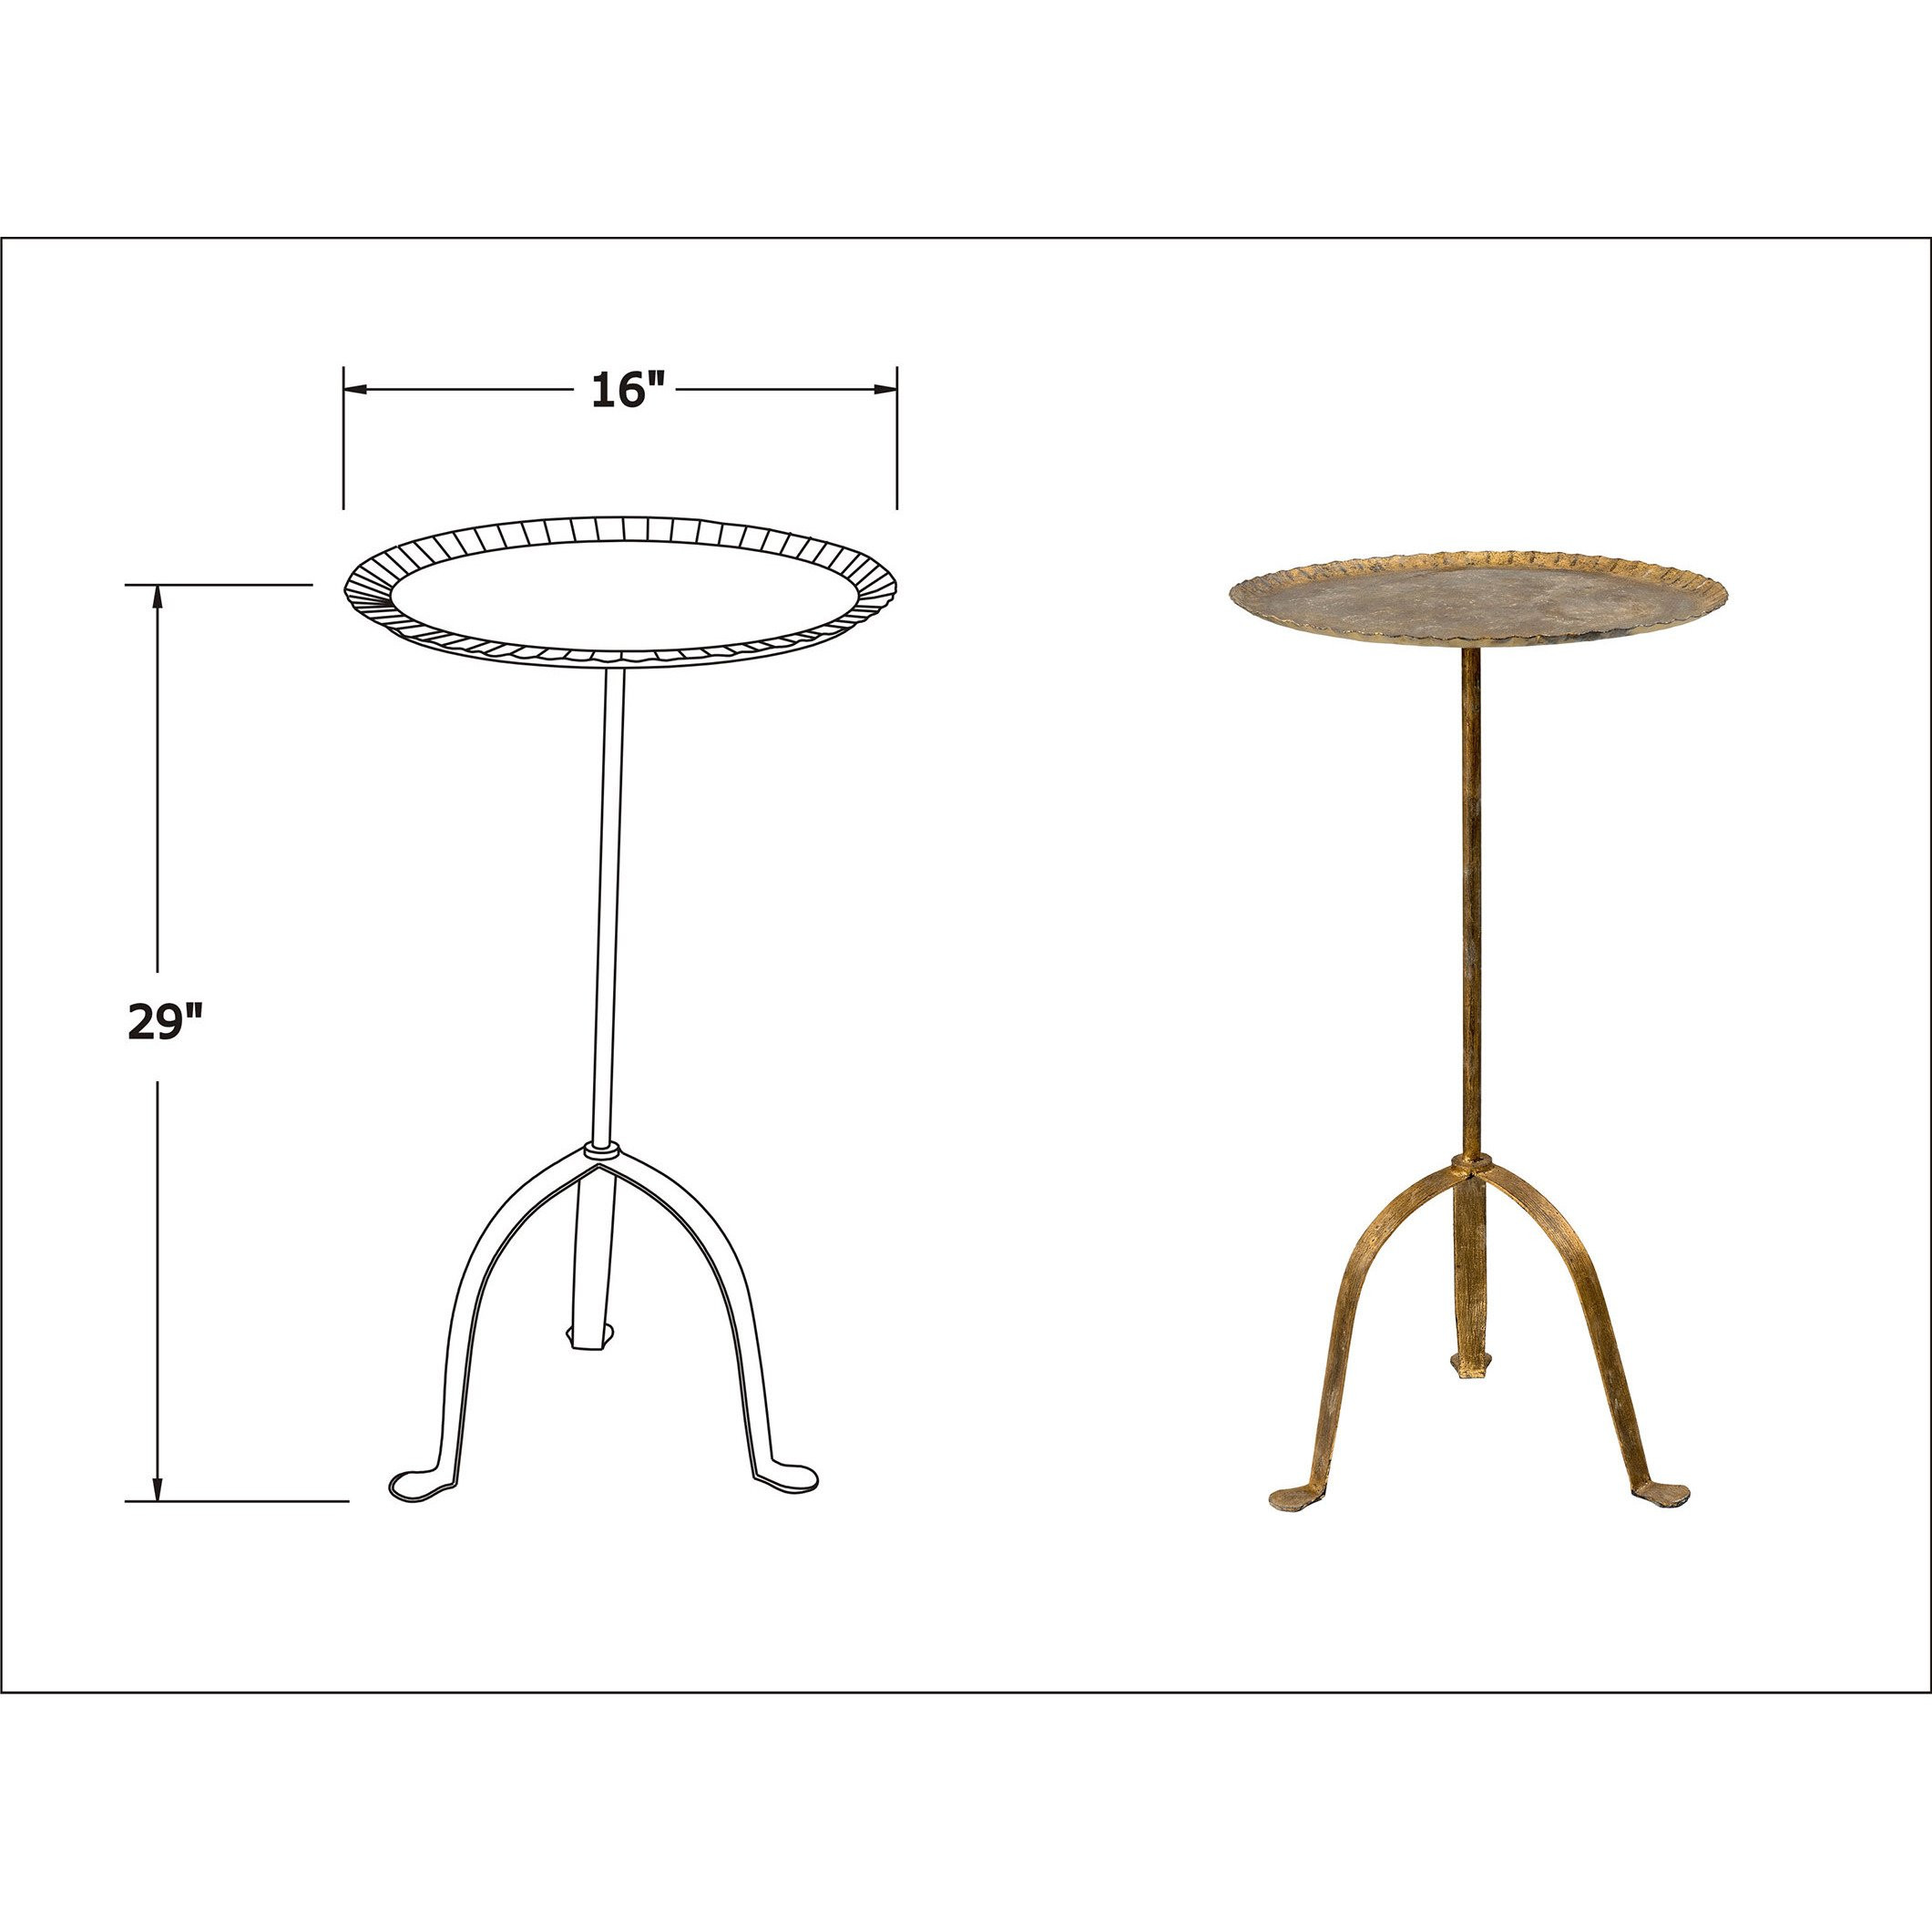 east main hooper gold round aluminum accent table free mains console shipping today monarch pottery barn art concrete garden and chairs furniture nest tables black ikea patio set